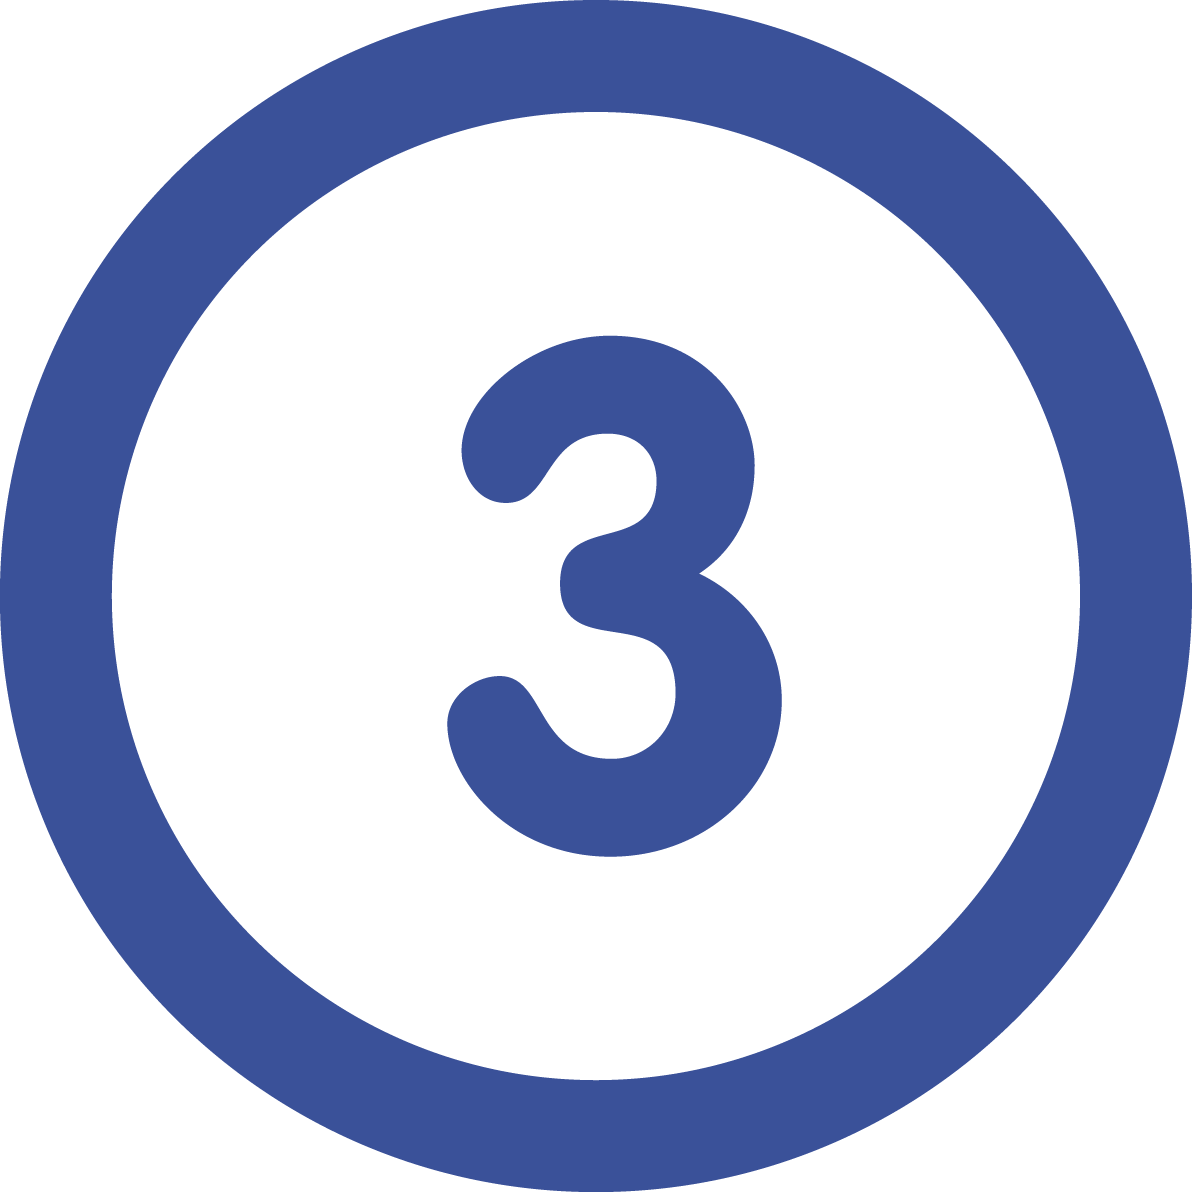 Number 3 designed by Freepik from Flaticon